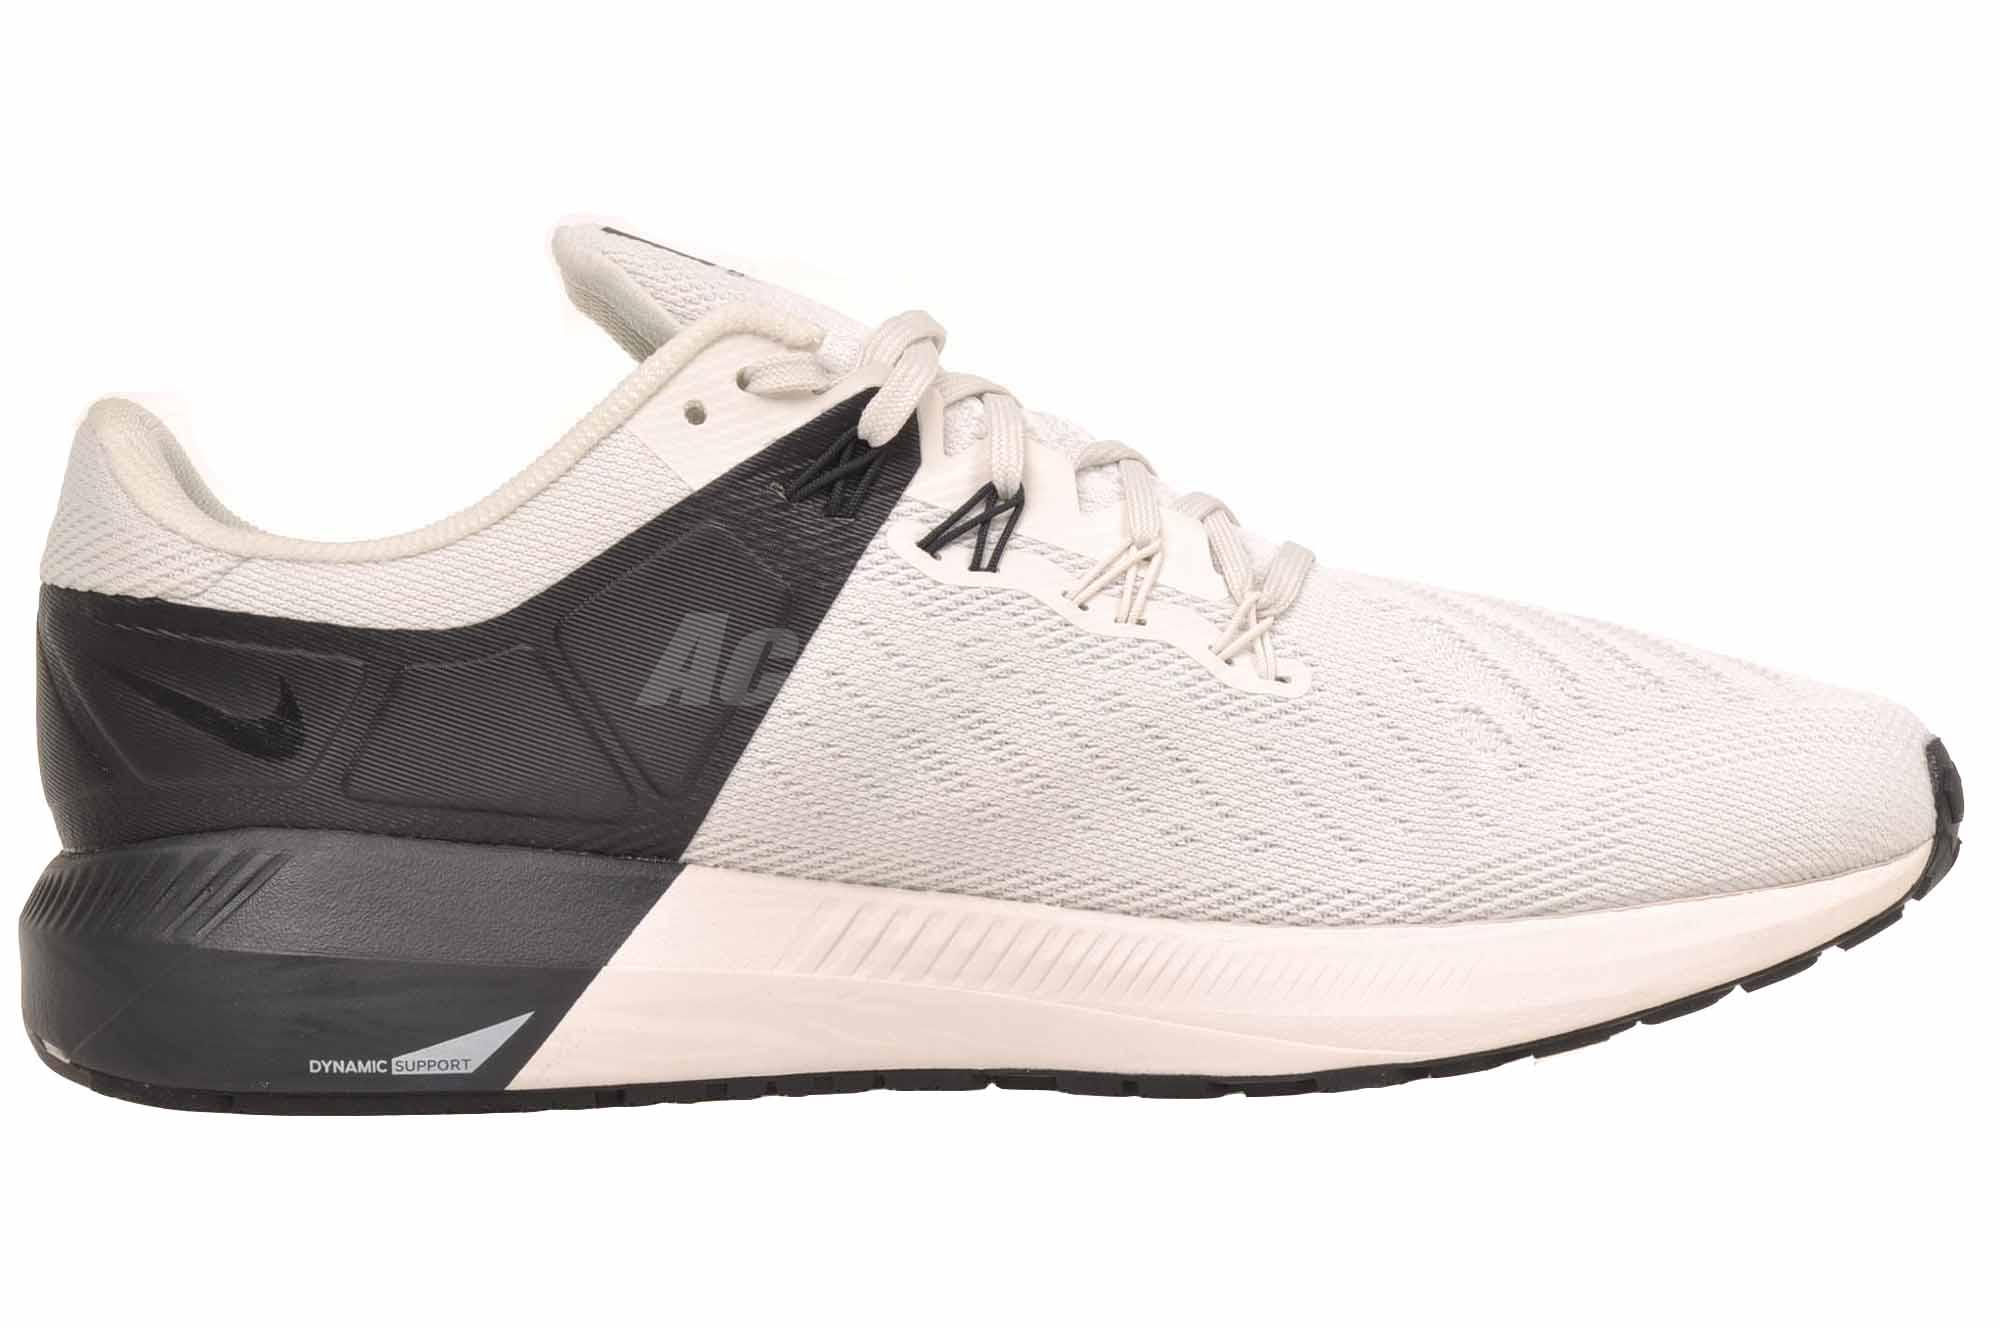 Details about Nike Wmns Air Zoom Structure 22 Running Womens Shoes Phantom AA1640 001